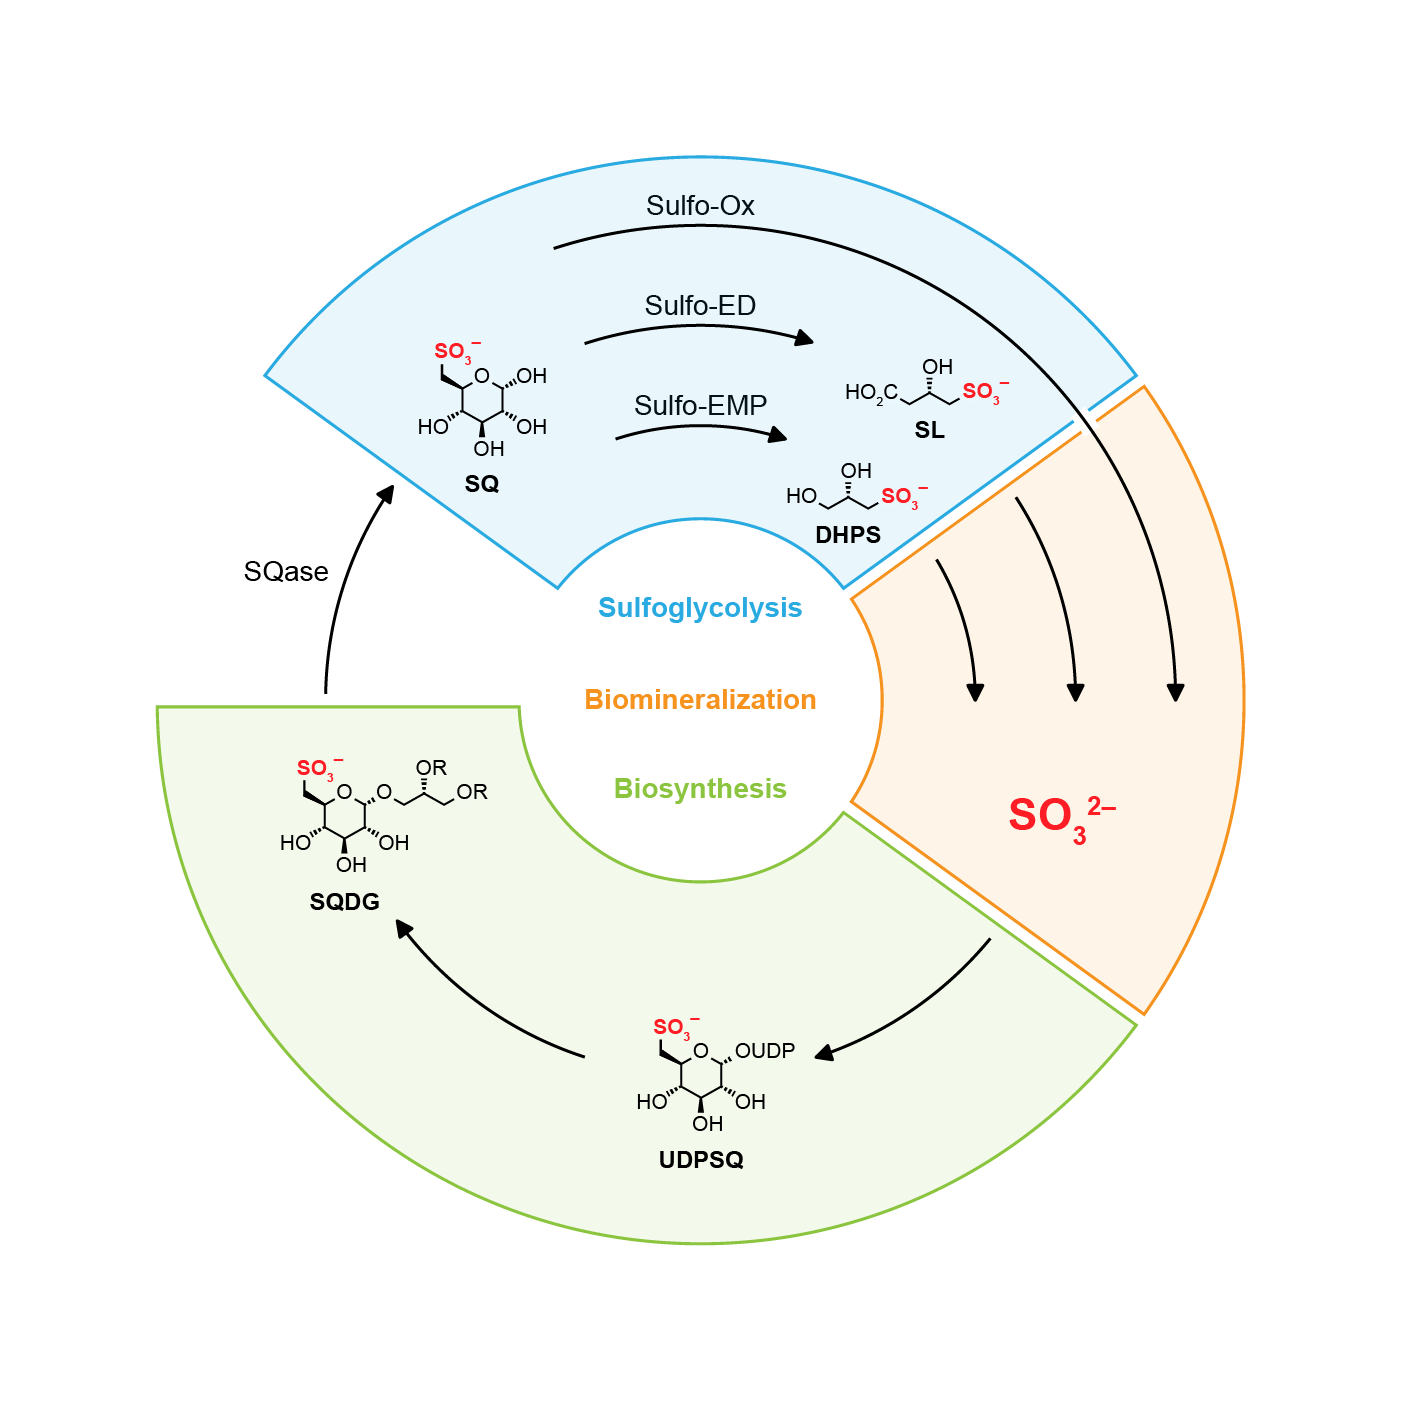 Metabolism scheme for a grant application